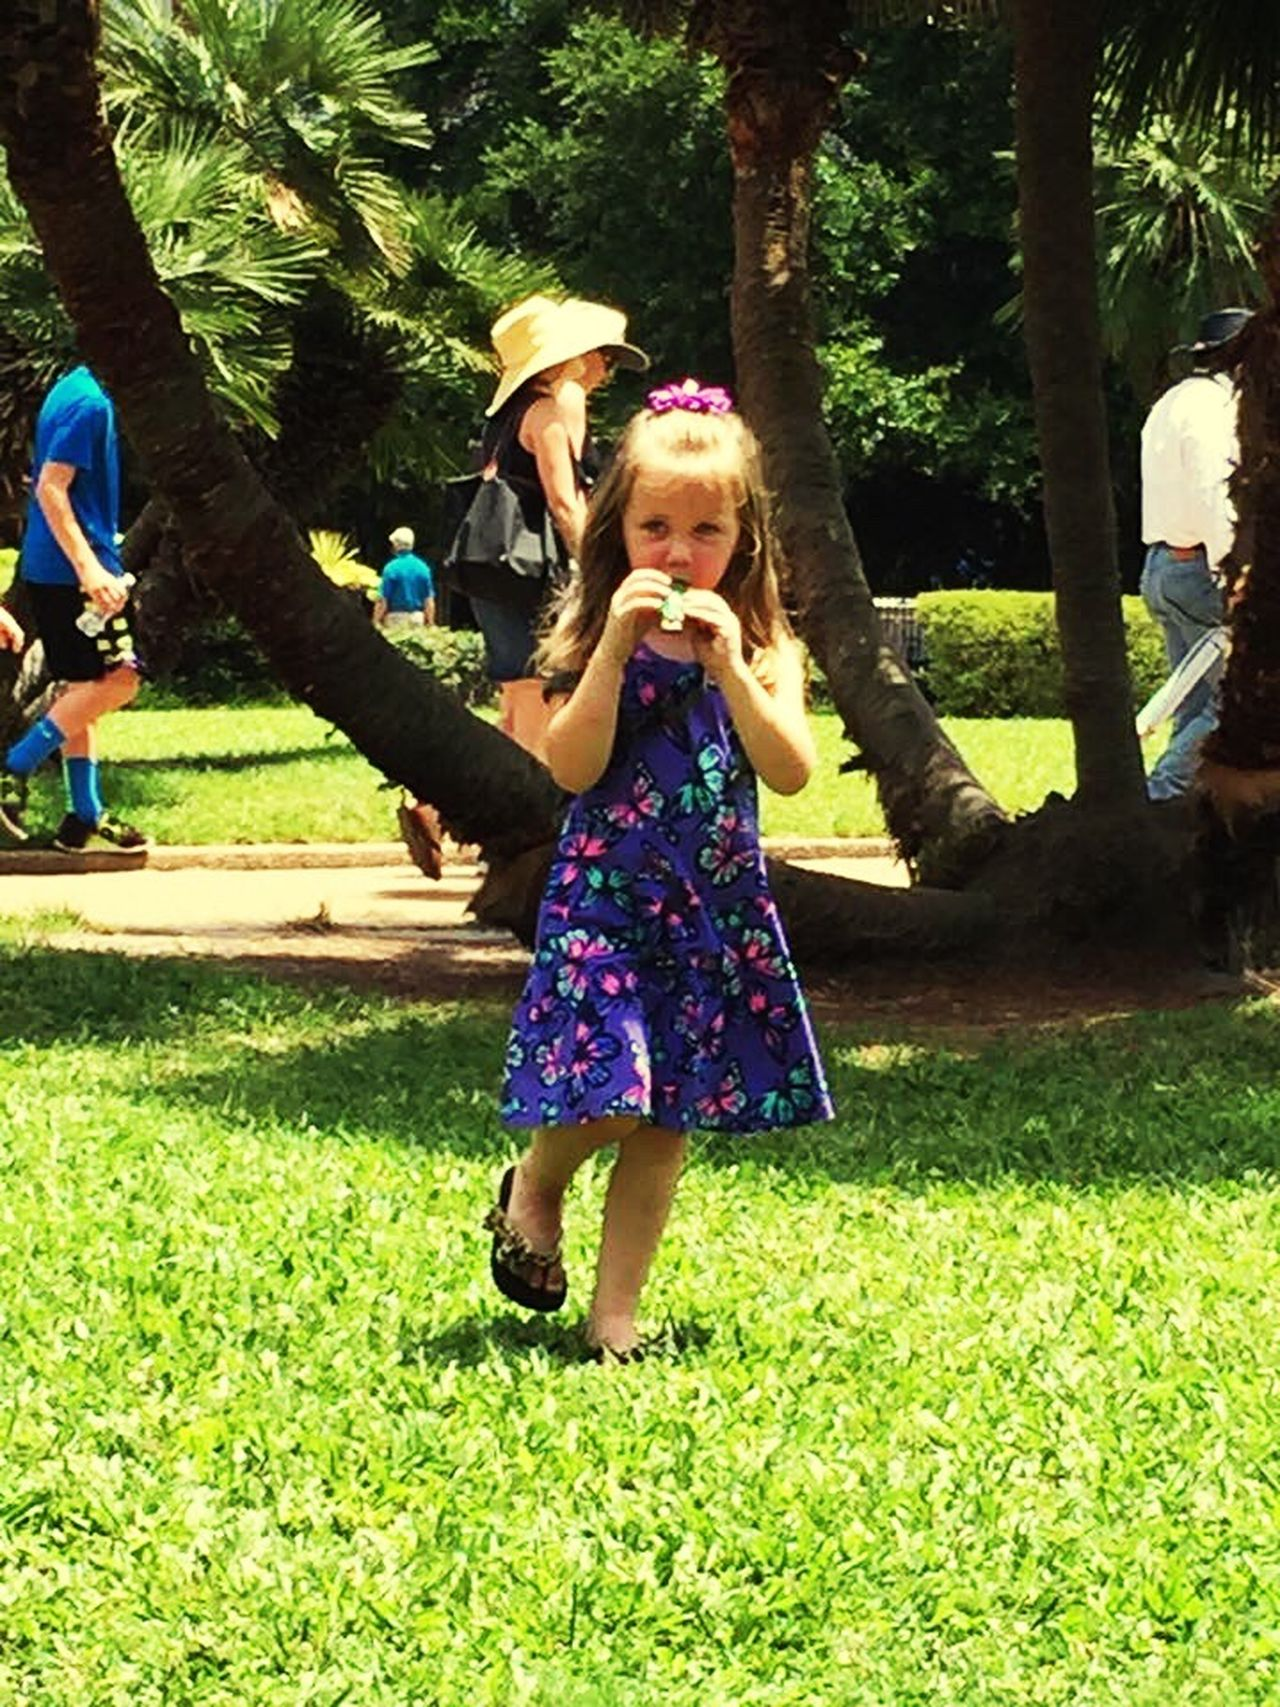 Music in the square Grass Childhood Innocence Child Sunlight Happiness Outdoors People Tree Jackson Square